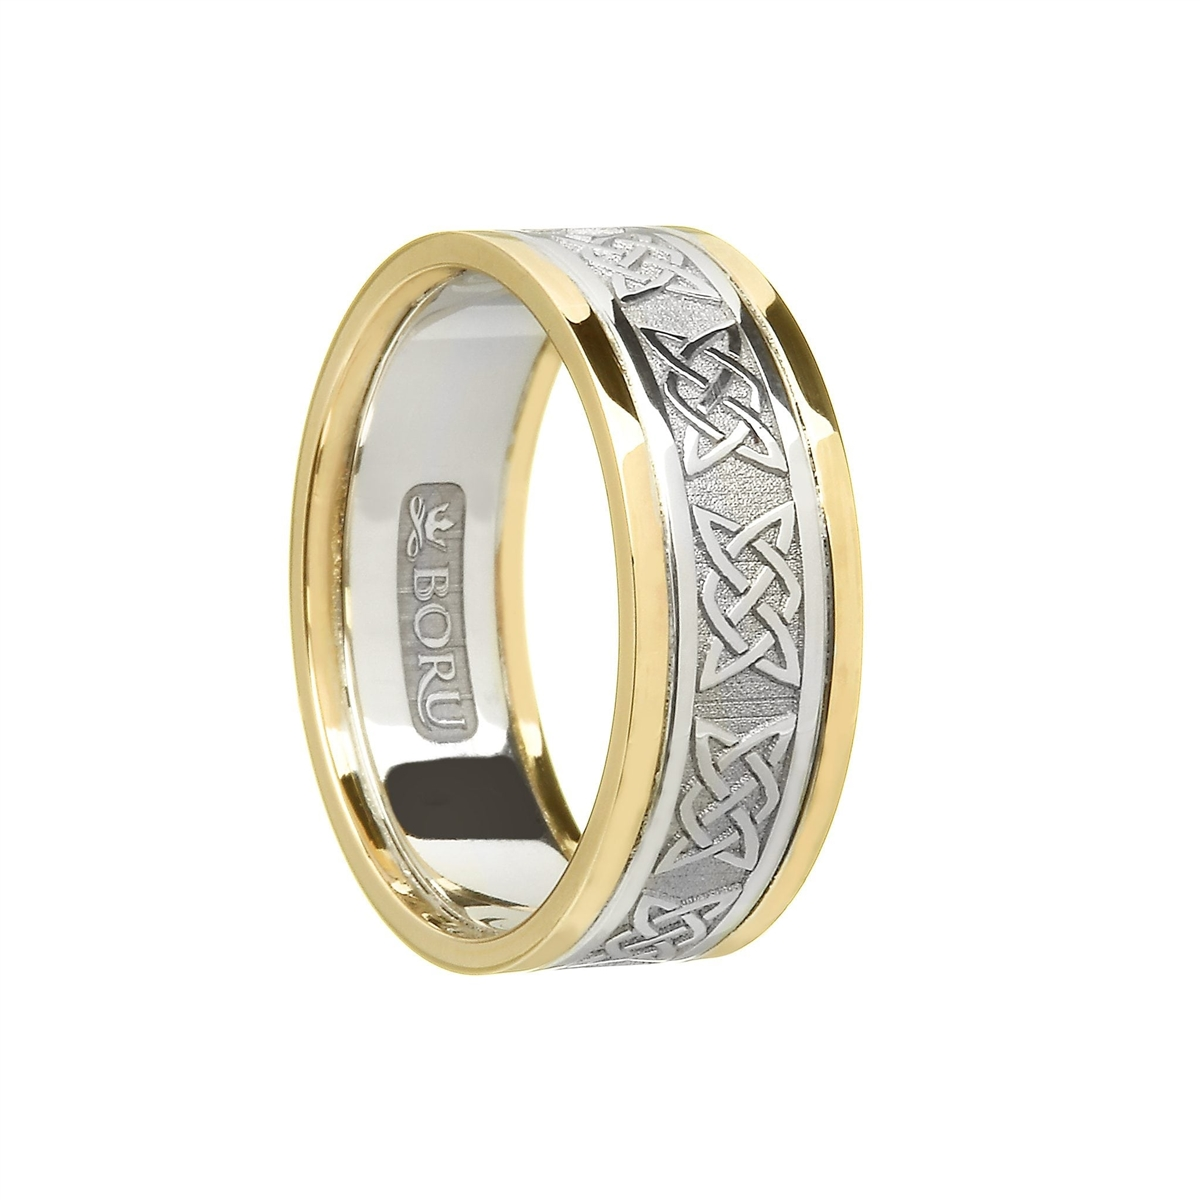 4d16cbf40c6b6 10k White Gold Ladies Lovers Knot Celtic Wedding Ring 9.1mm